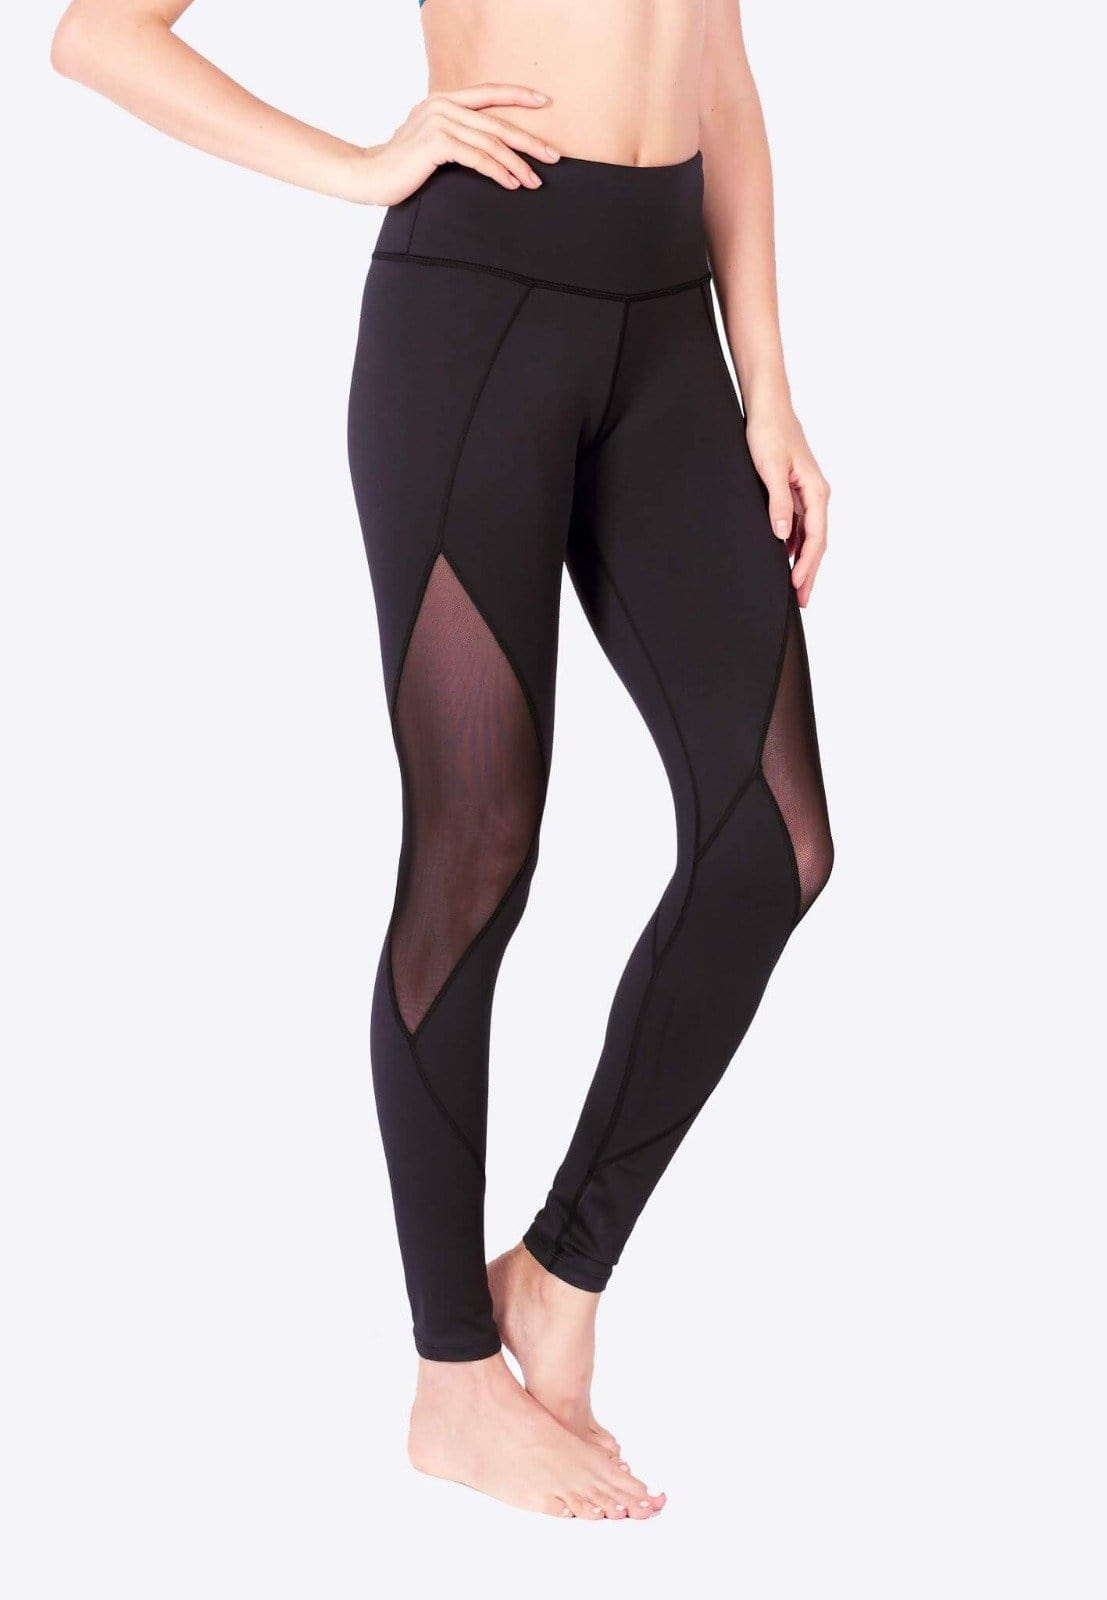 LIMITLESS Diamond Mesh Leggings (with Keeperband®) (Black) | XS - 3XL